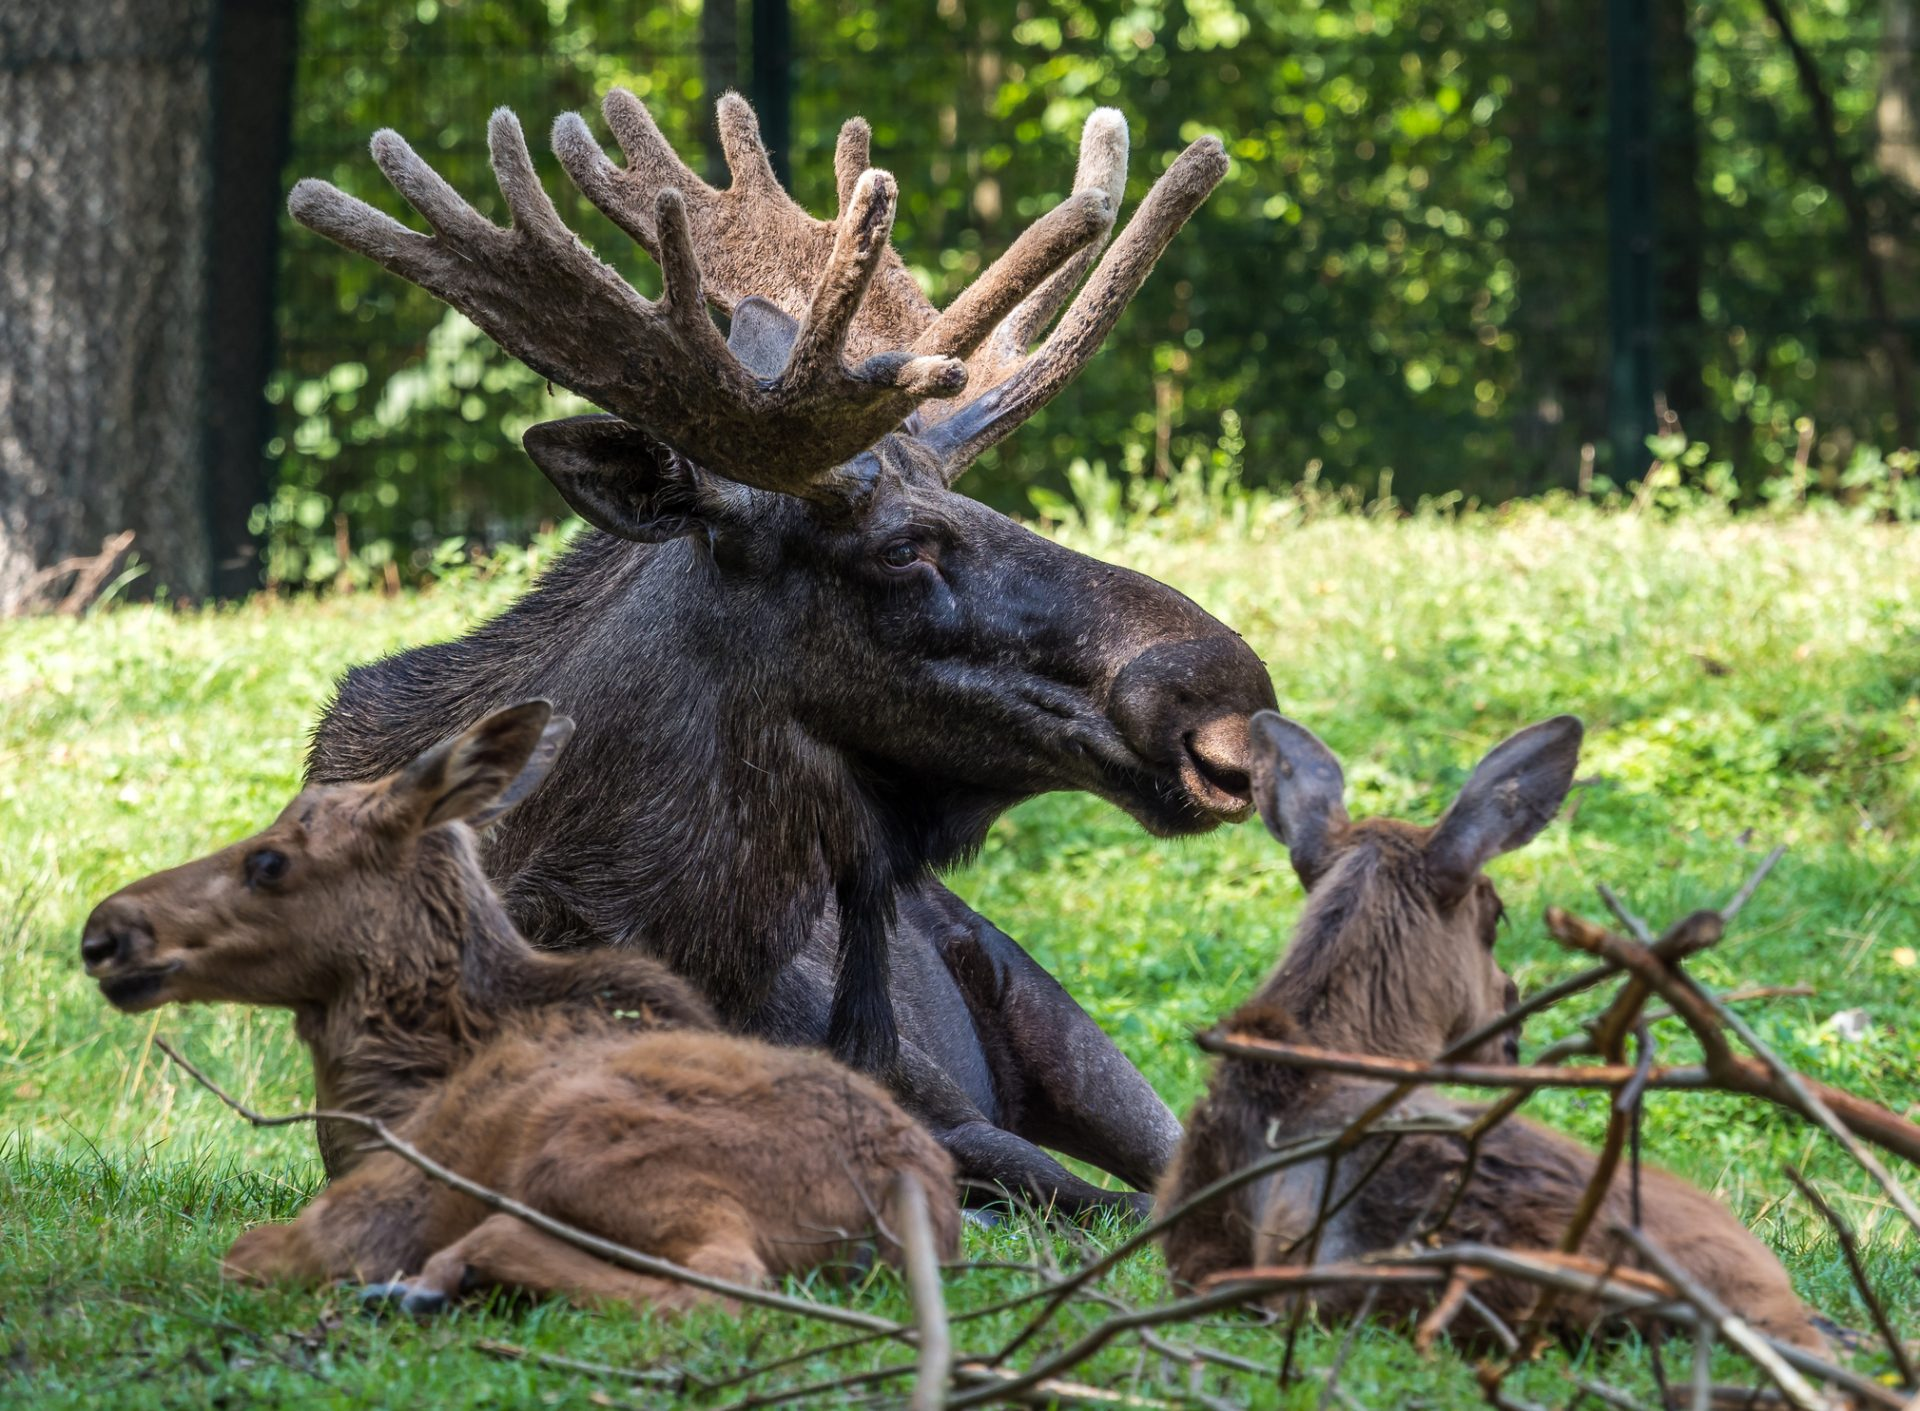 European Moose, Alces alces, also known as the elk